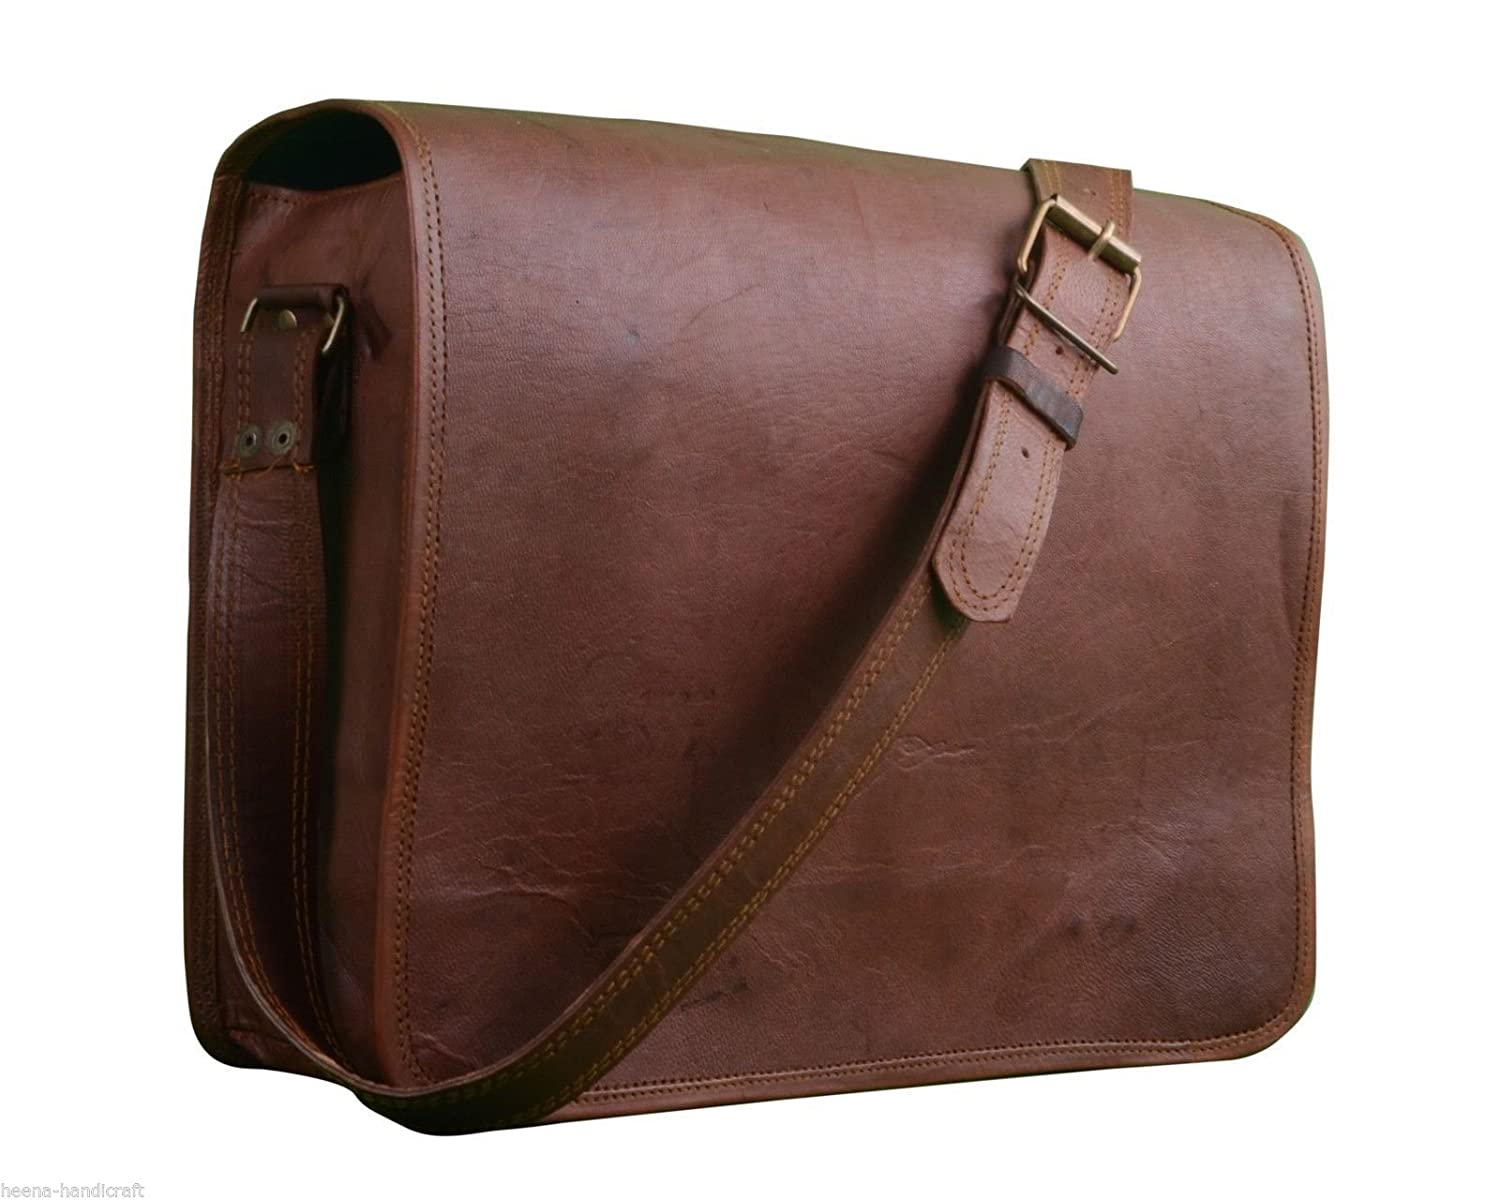 handolederco.. Leather Genuine Messenger Handmade Bag Laptop Satchel Bag Padded Messenger Shoulder School Bag 10X13X3 Inches Brown